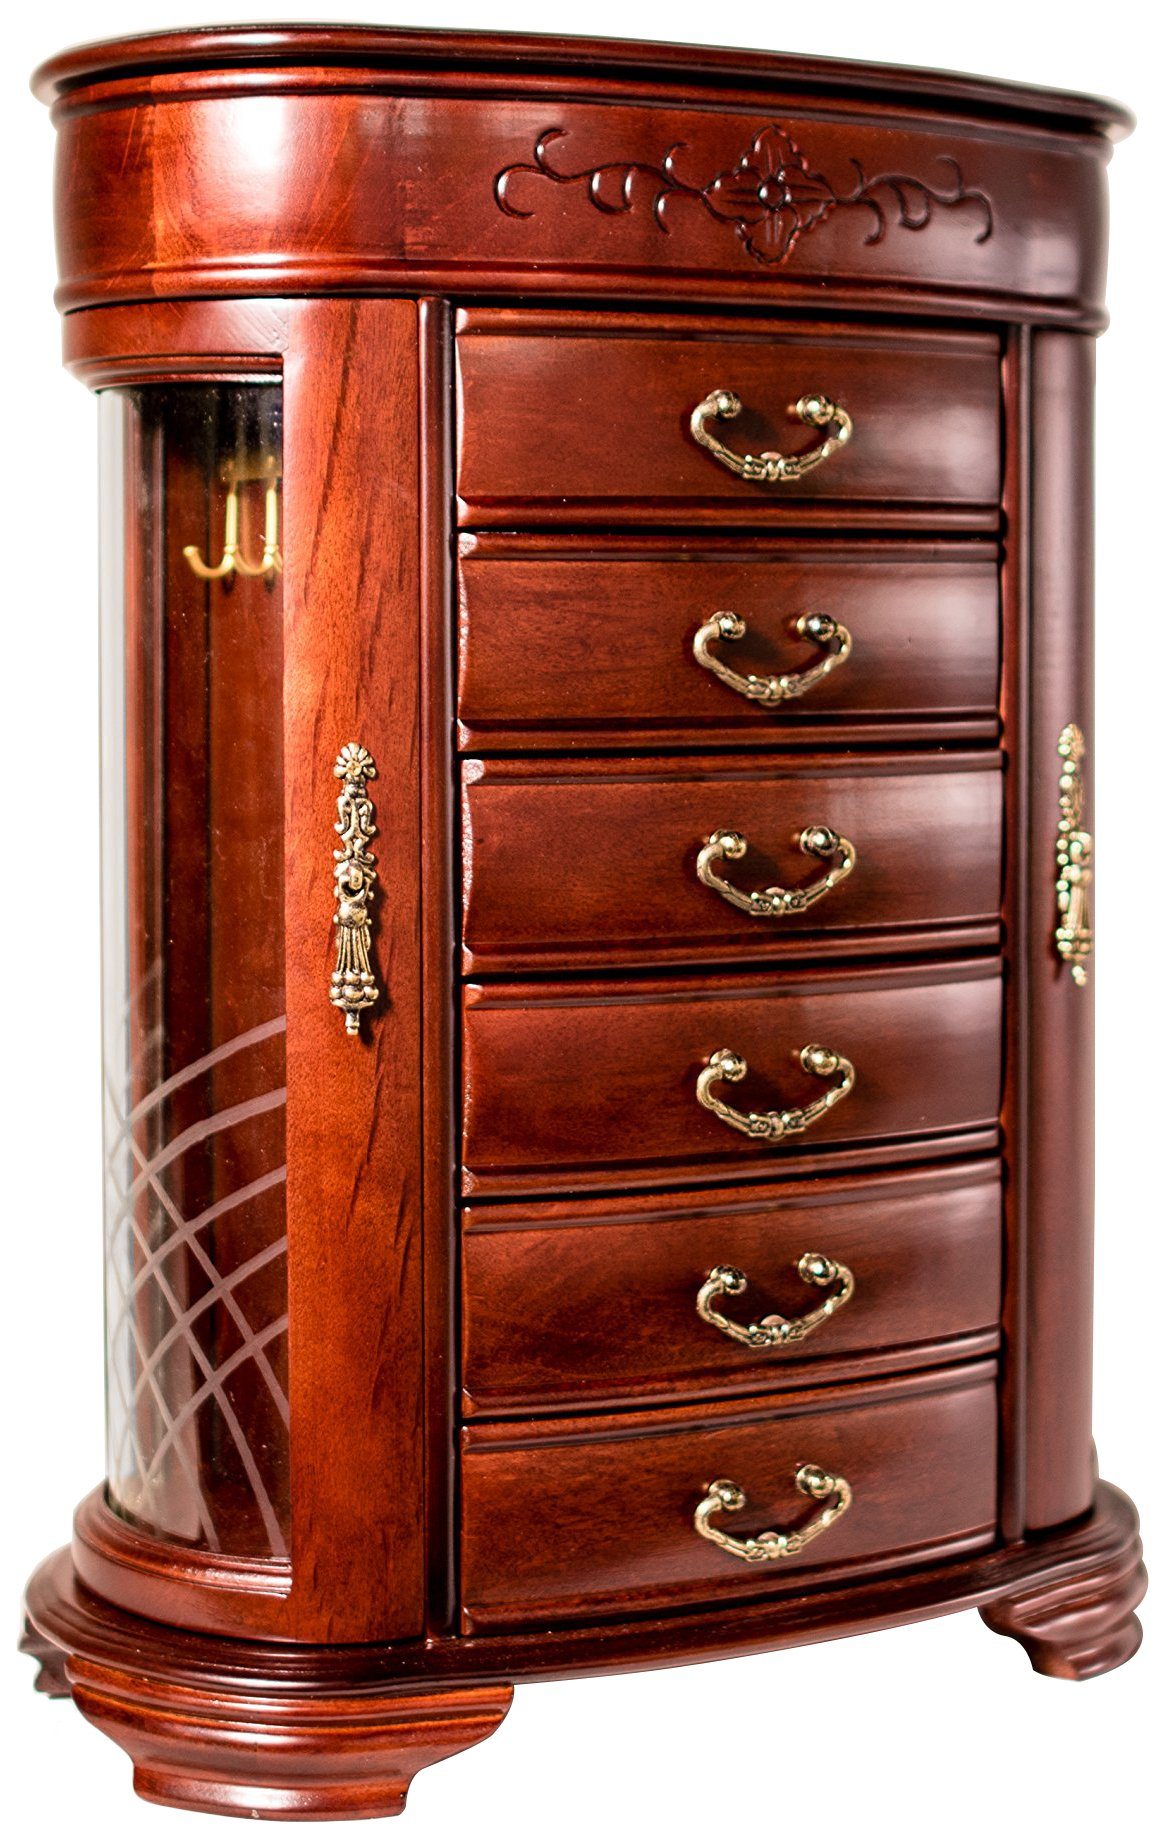 Details about hives and honey patricia etched glass mahogany jewelry chest jewelry box